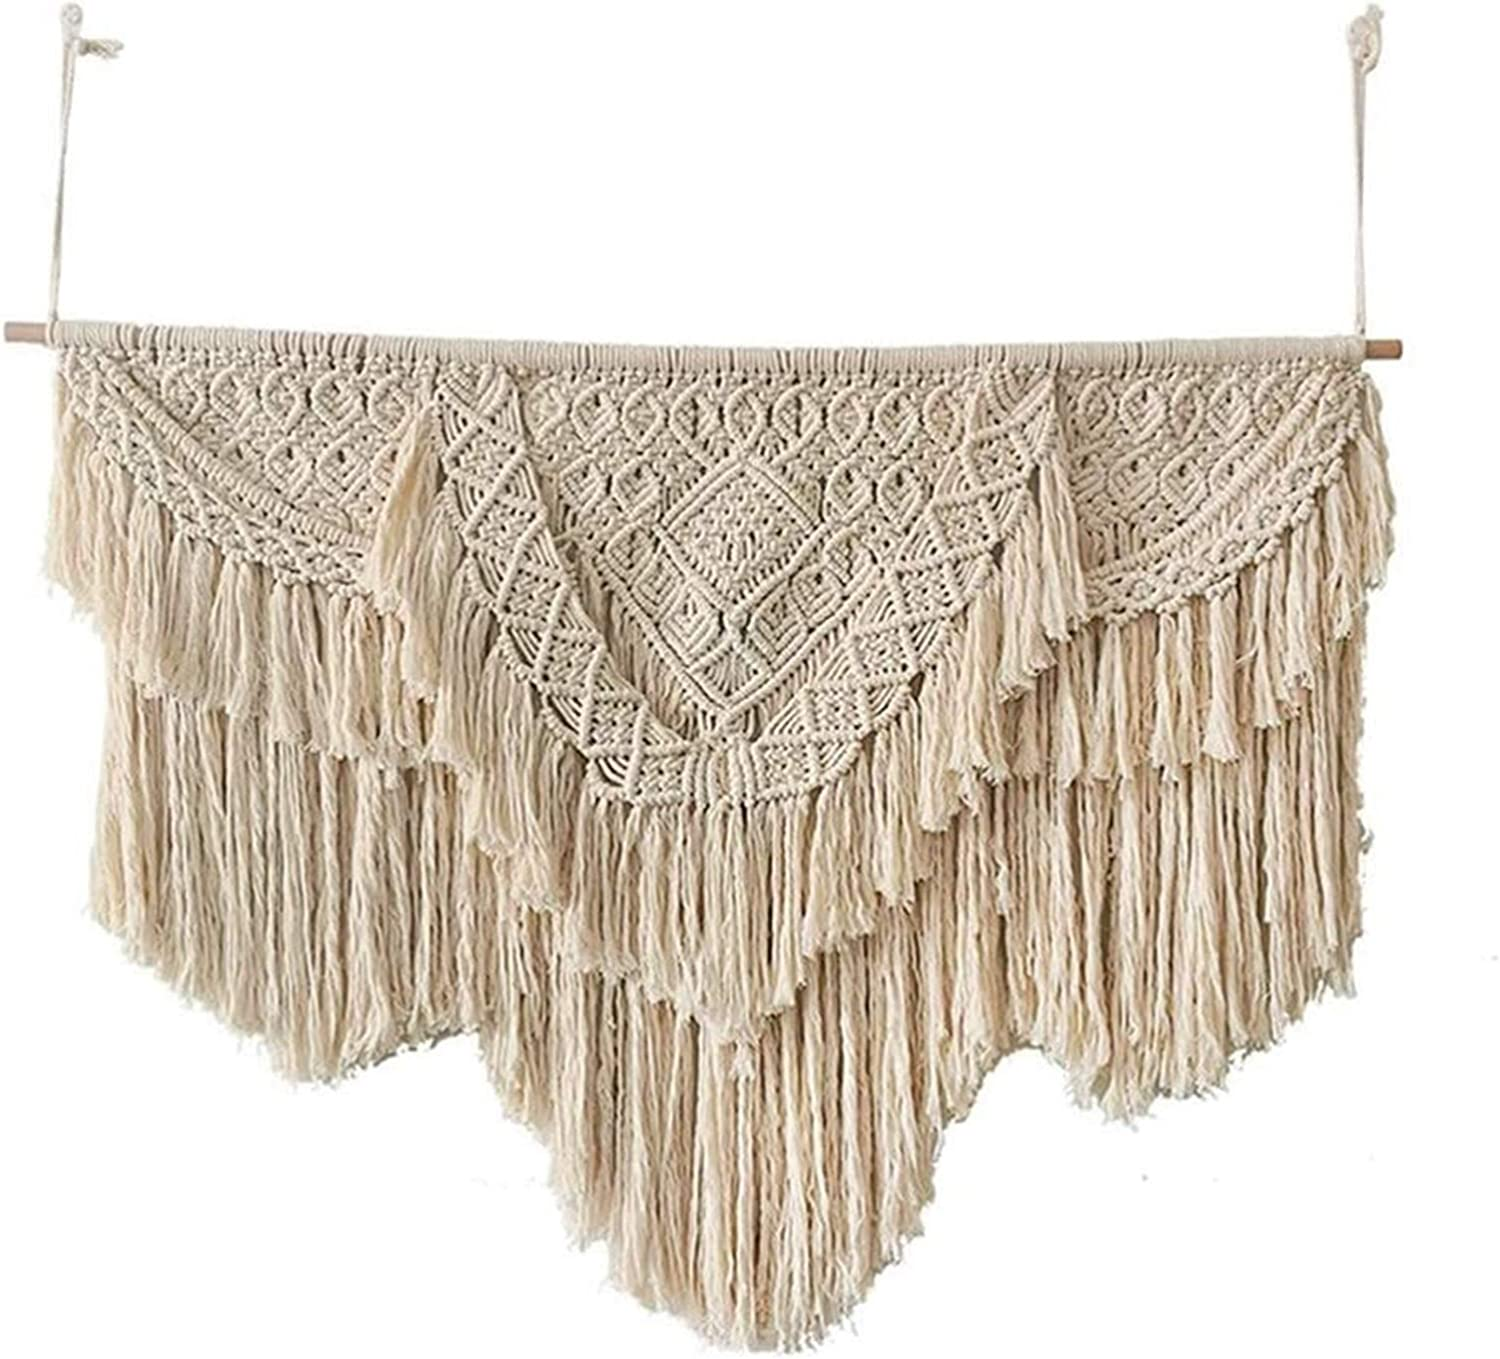 YYDD Super popular specialty store Boho Macrame Wall Tapestry Woven Popular Hang Hanging